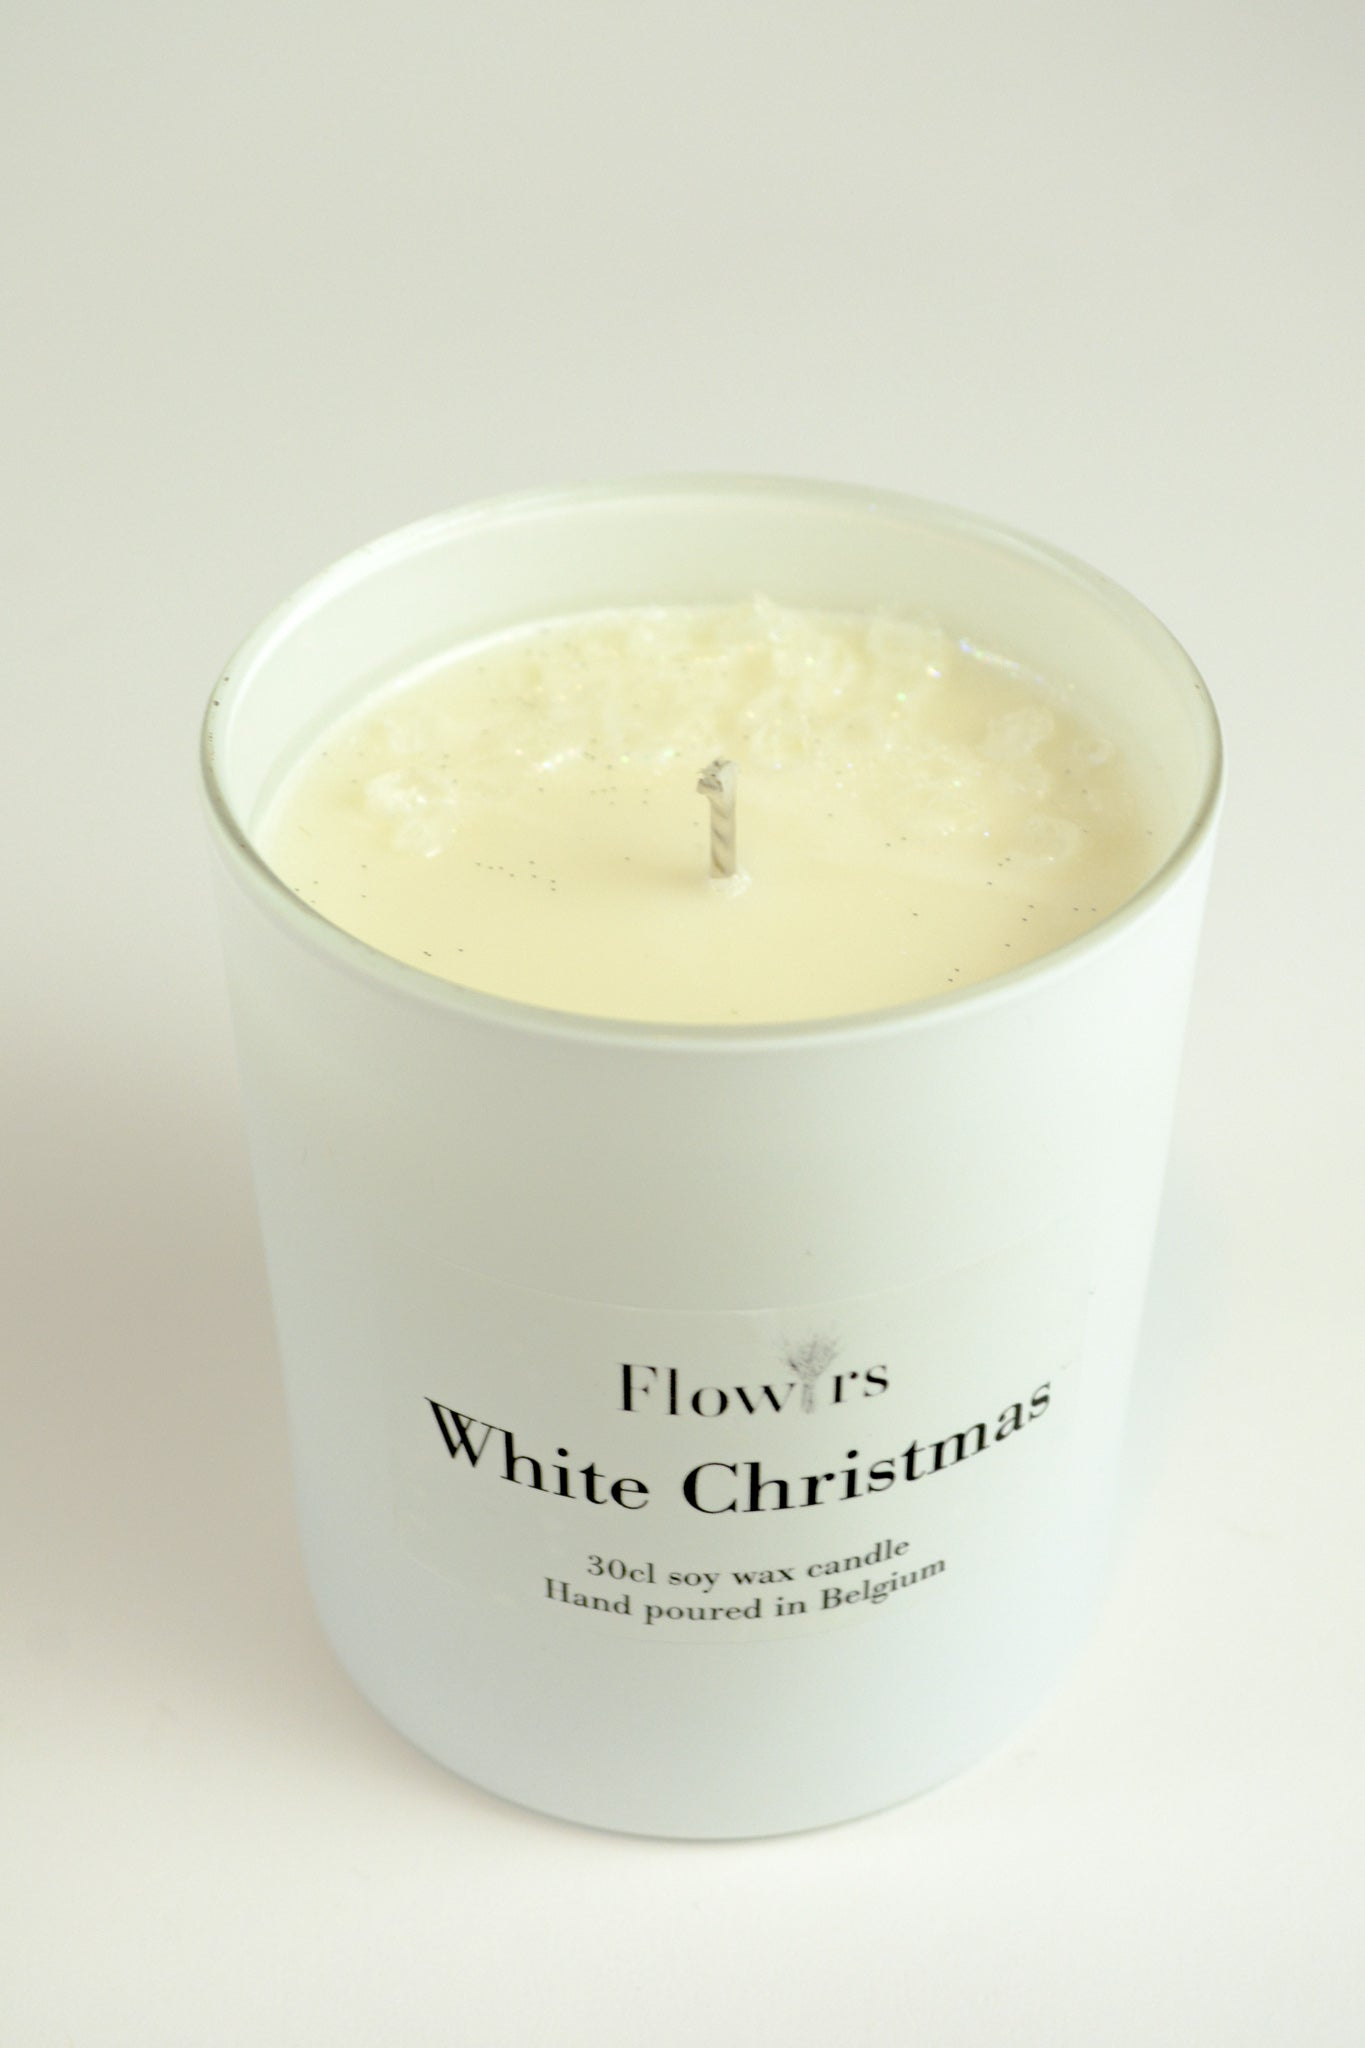 White Christmas - Flowrs.shop     candle, Decoration - gedroogde bloemen , fleurs séchees